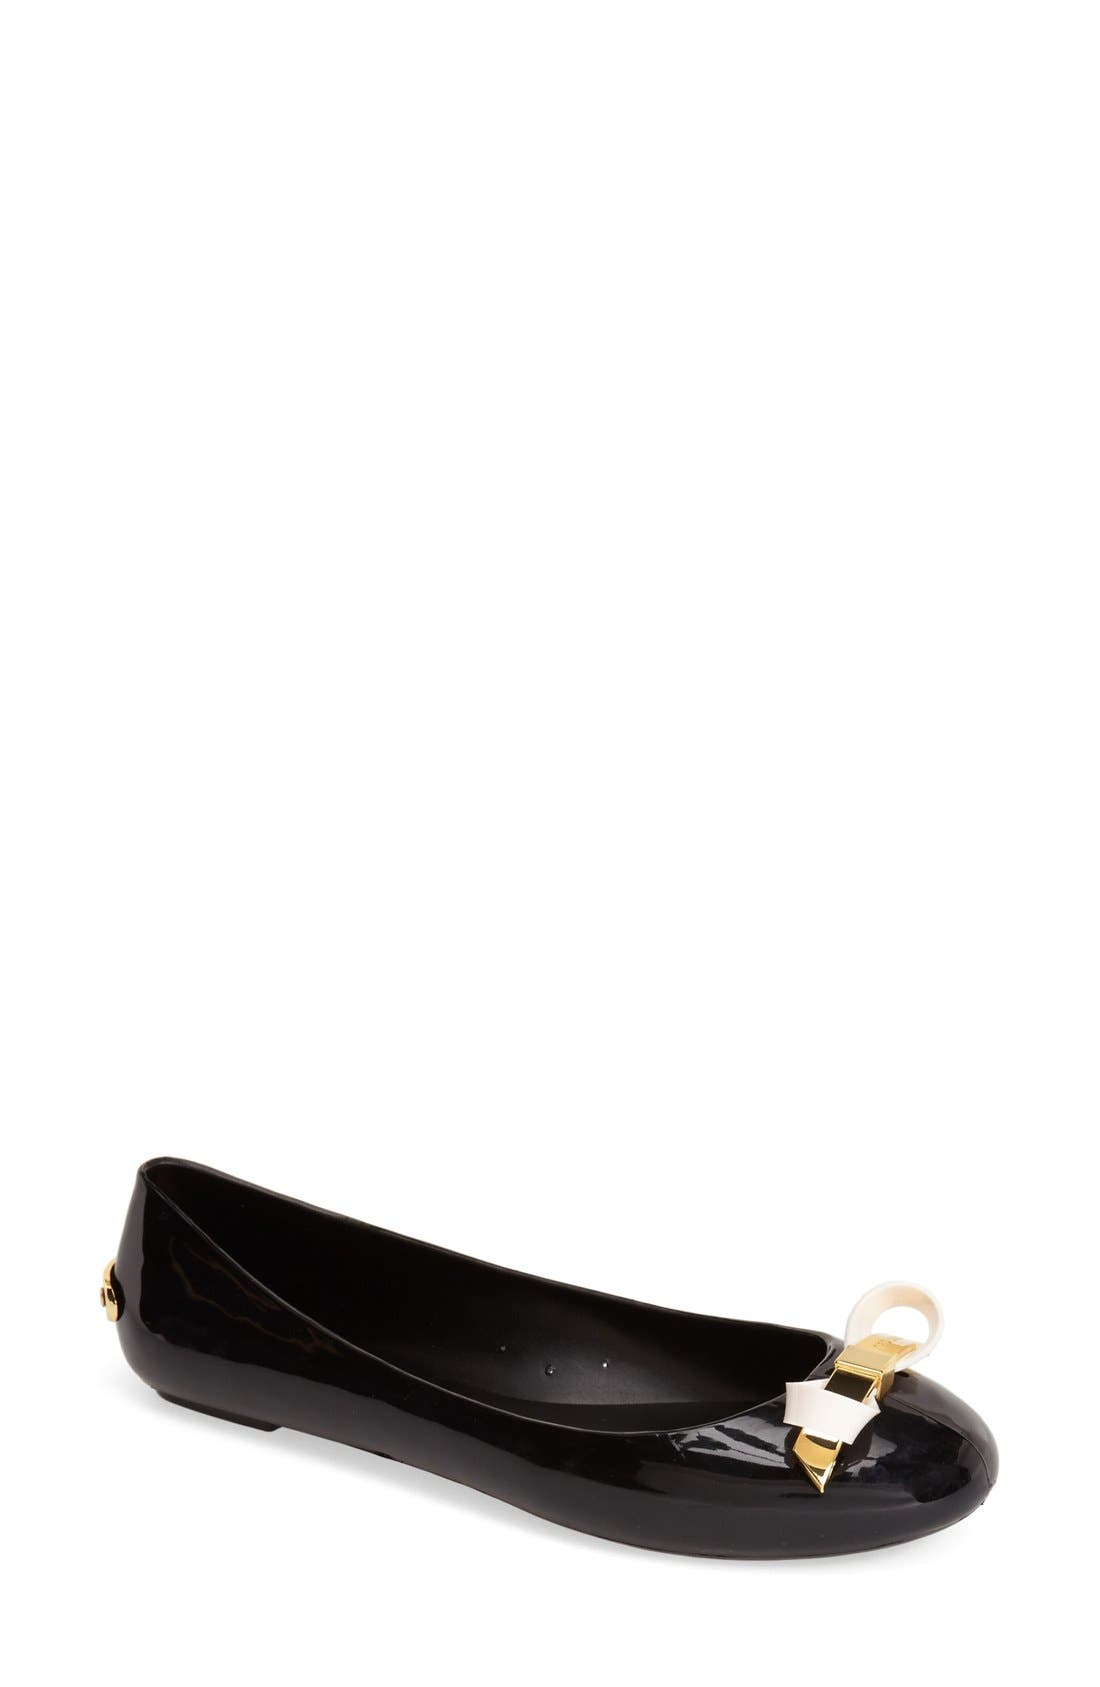 Alternate Image 1 Selected - Ted Baker London 'Issan' Jelly Flat (Women)